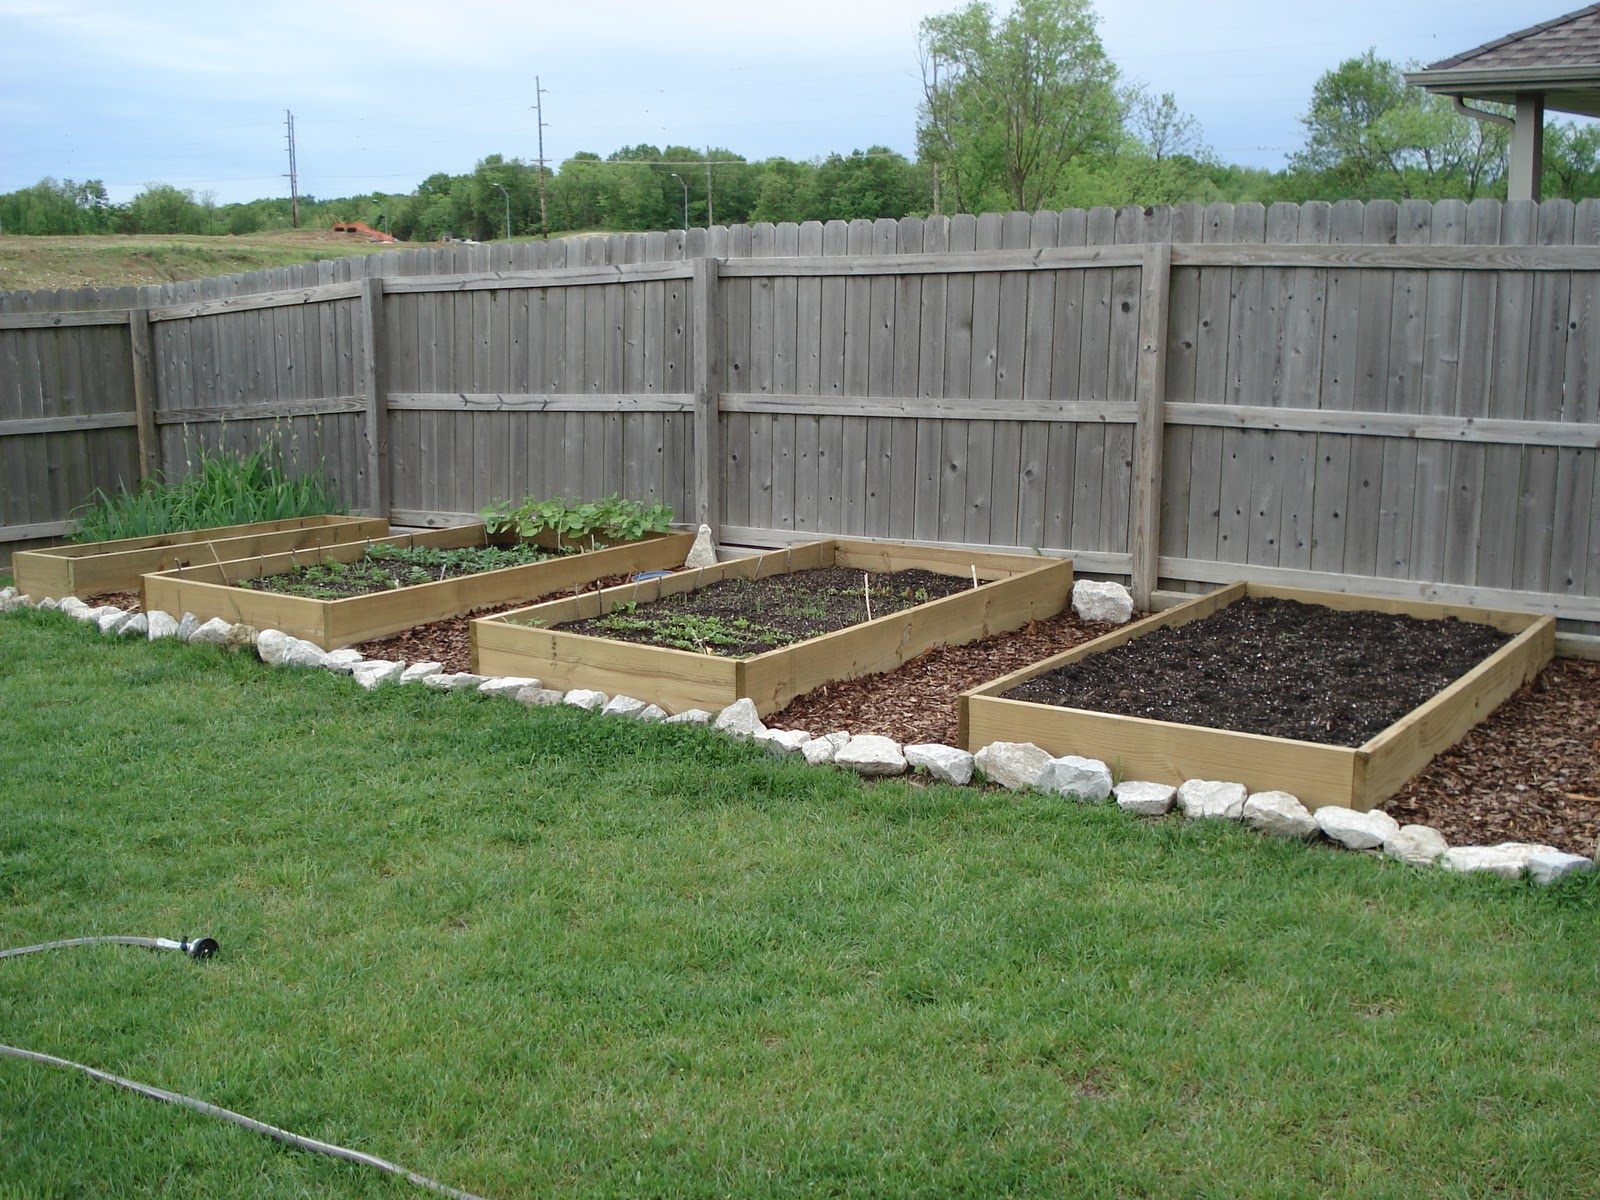 James Eugene Diy Raised Garden Beds